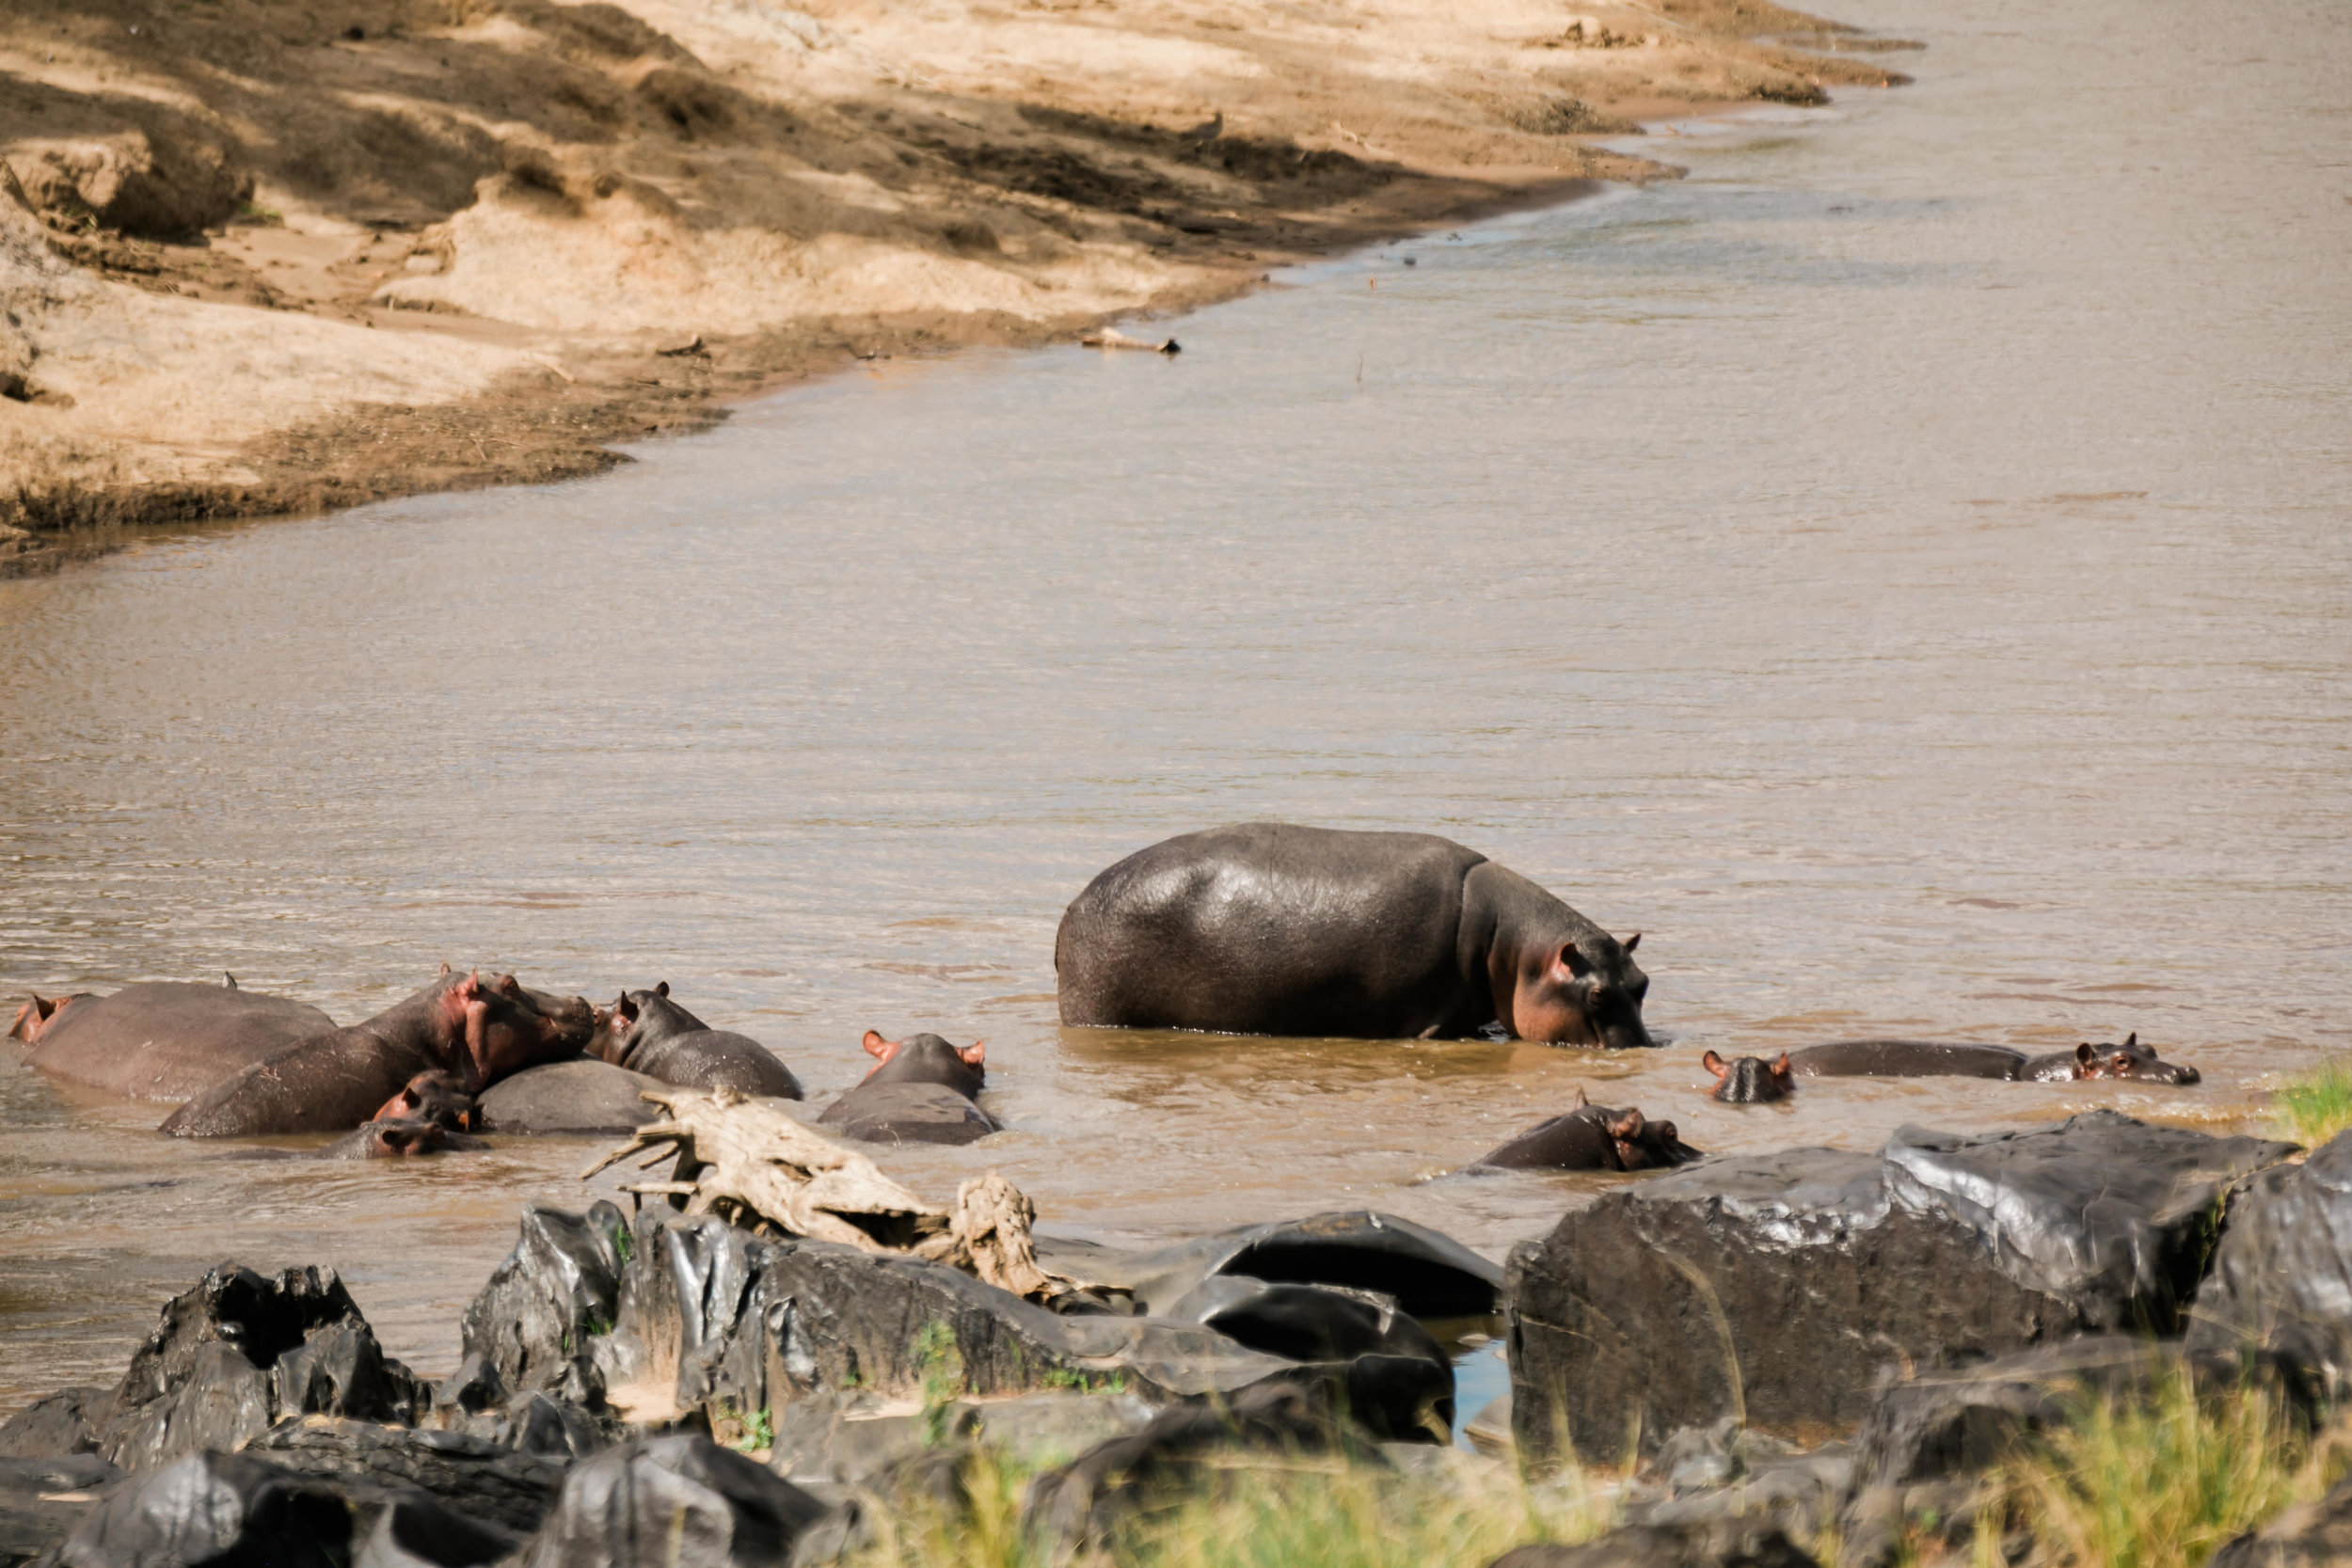 Hippos in the Maasai River Ph. Valorie Darling